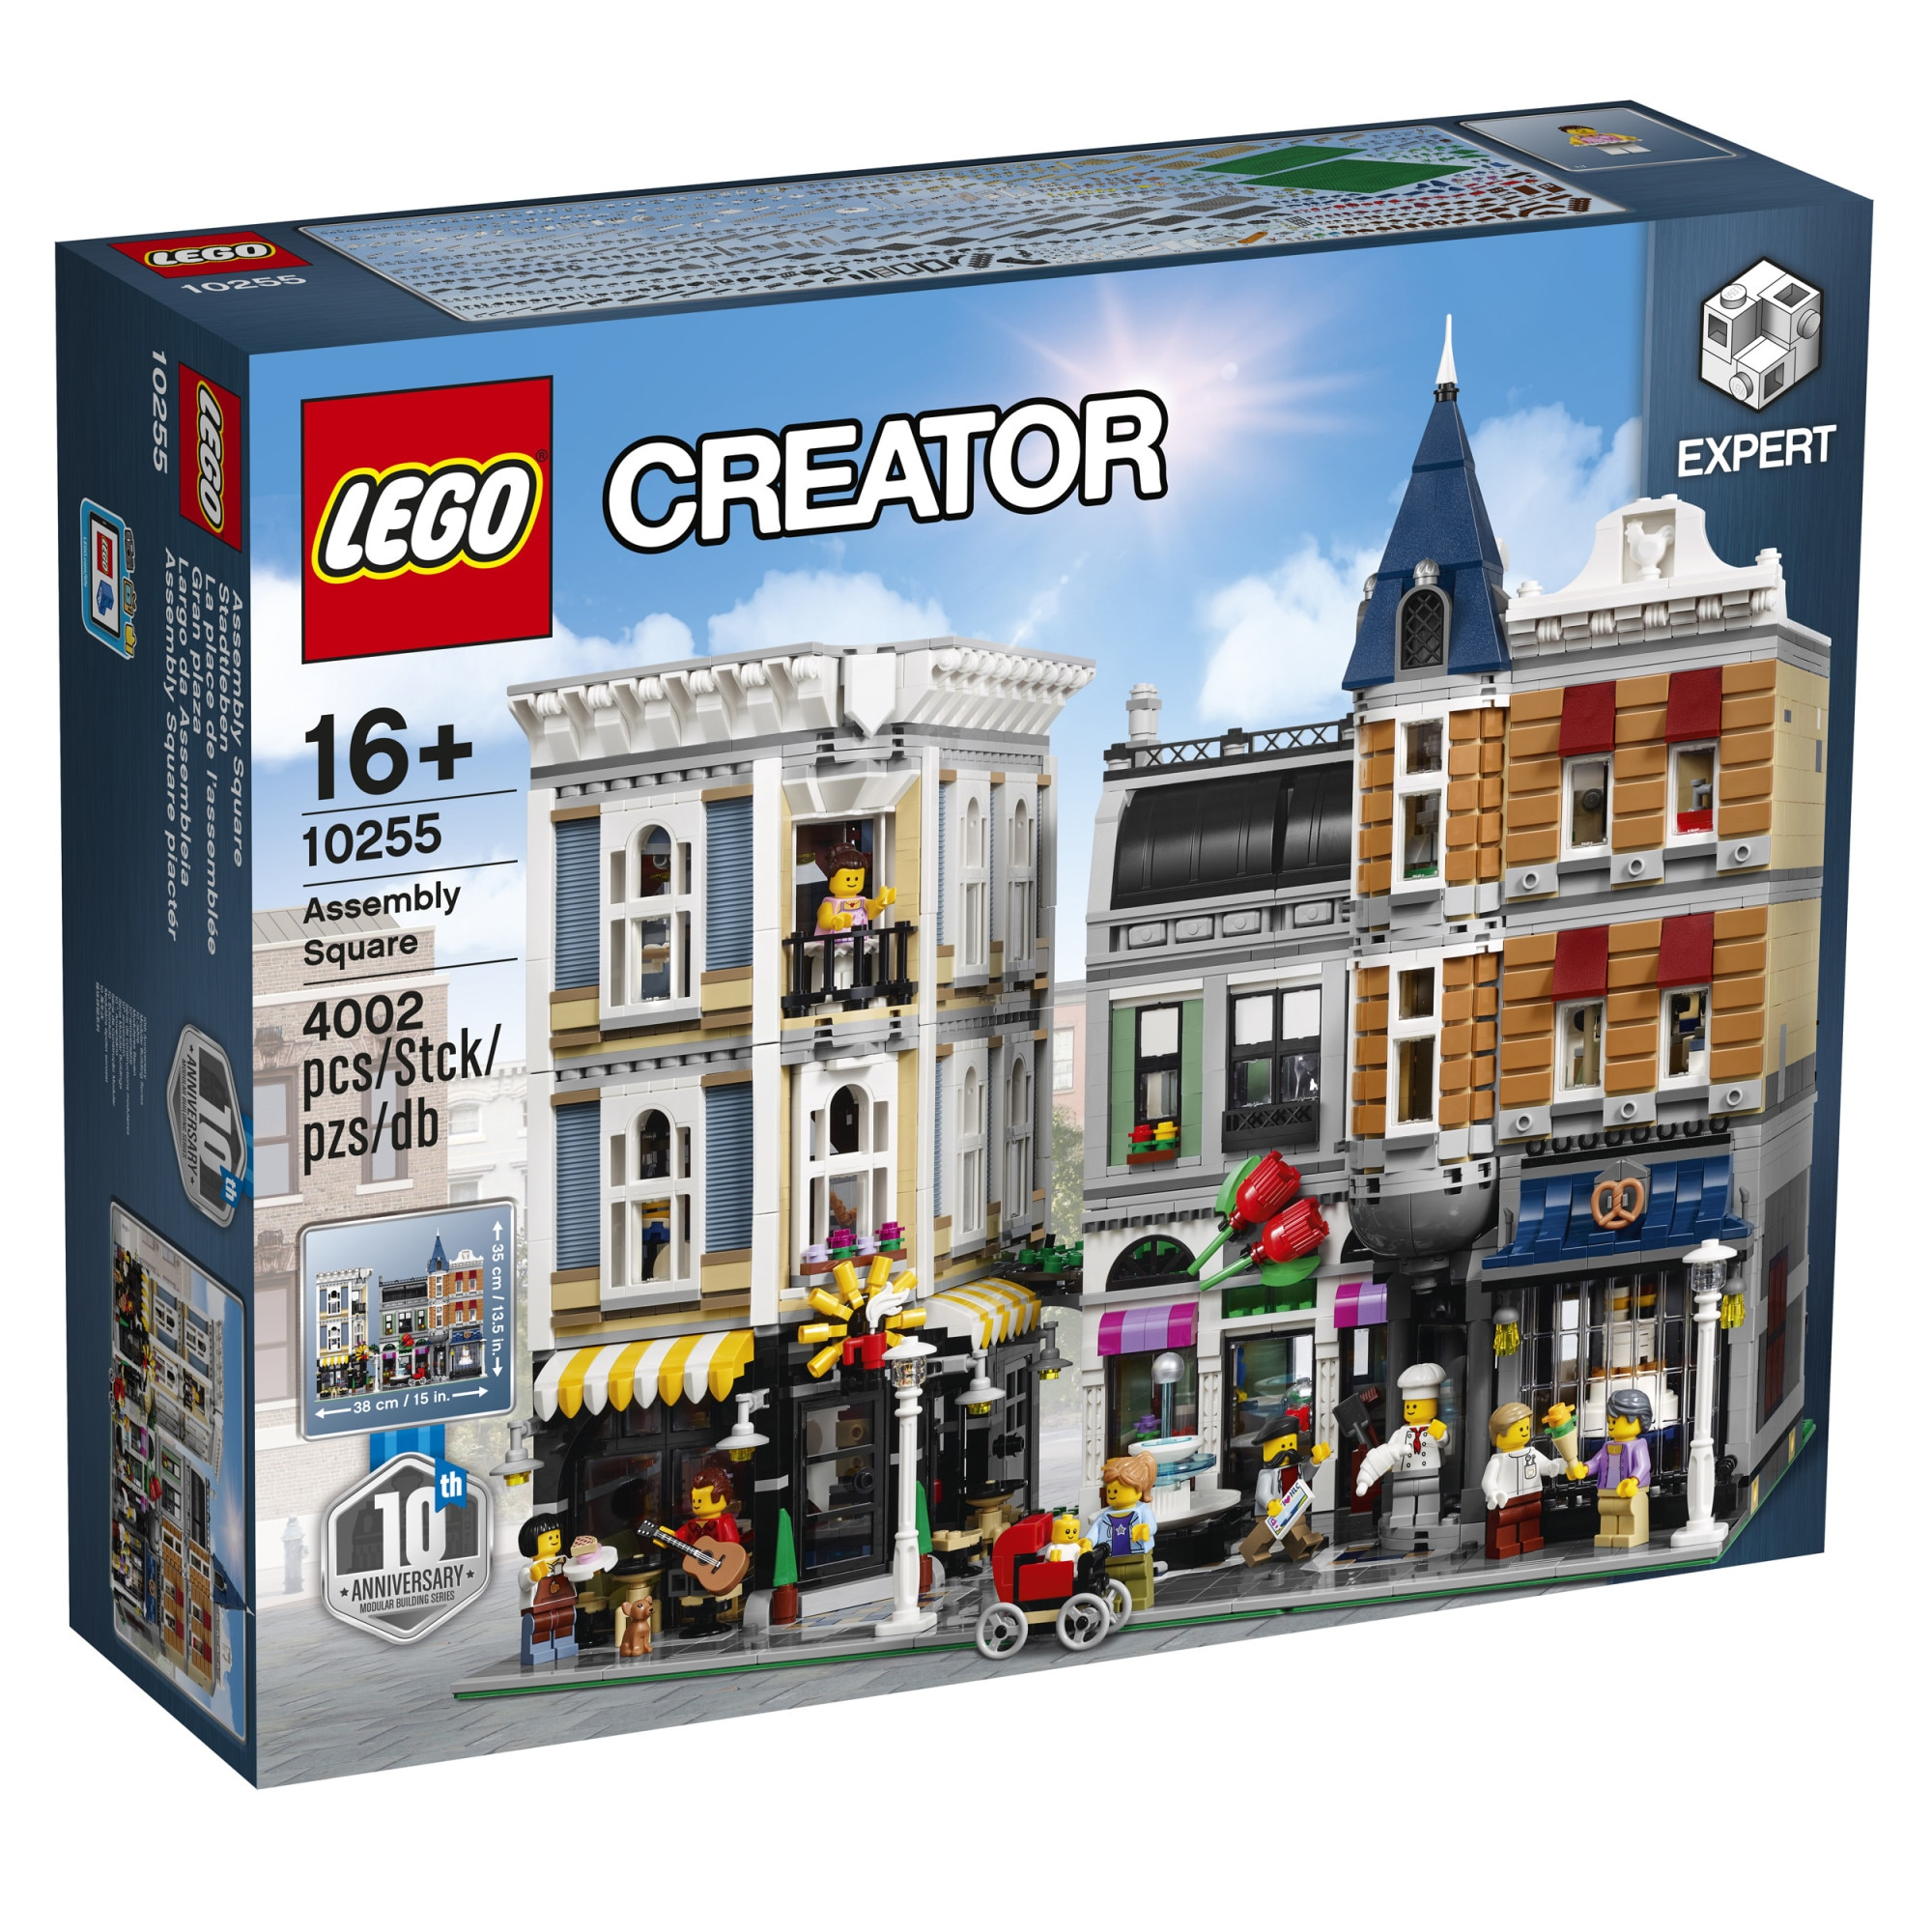 Fotografie LEGO Creator Expert - Assembly Square 10255, 4002 piese